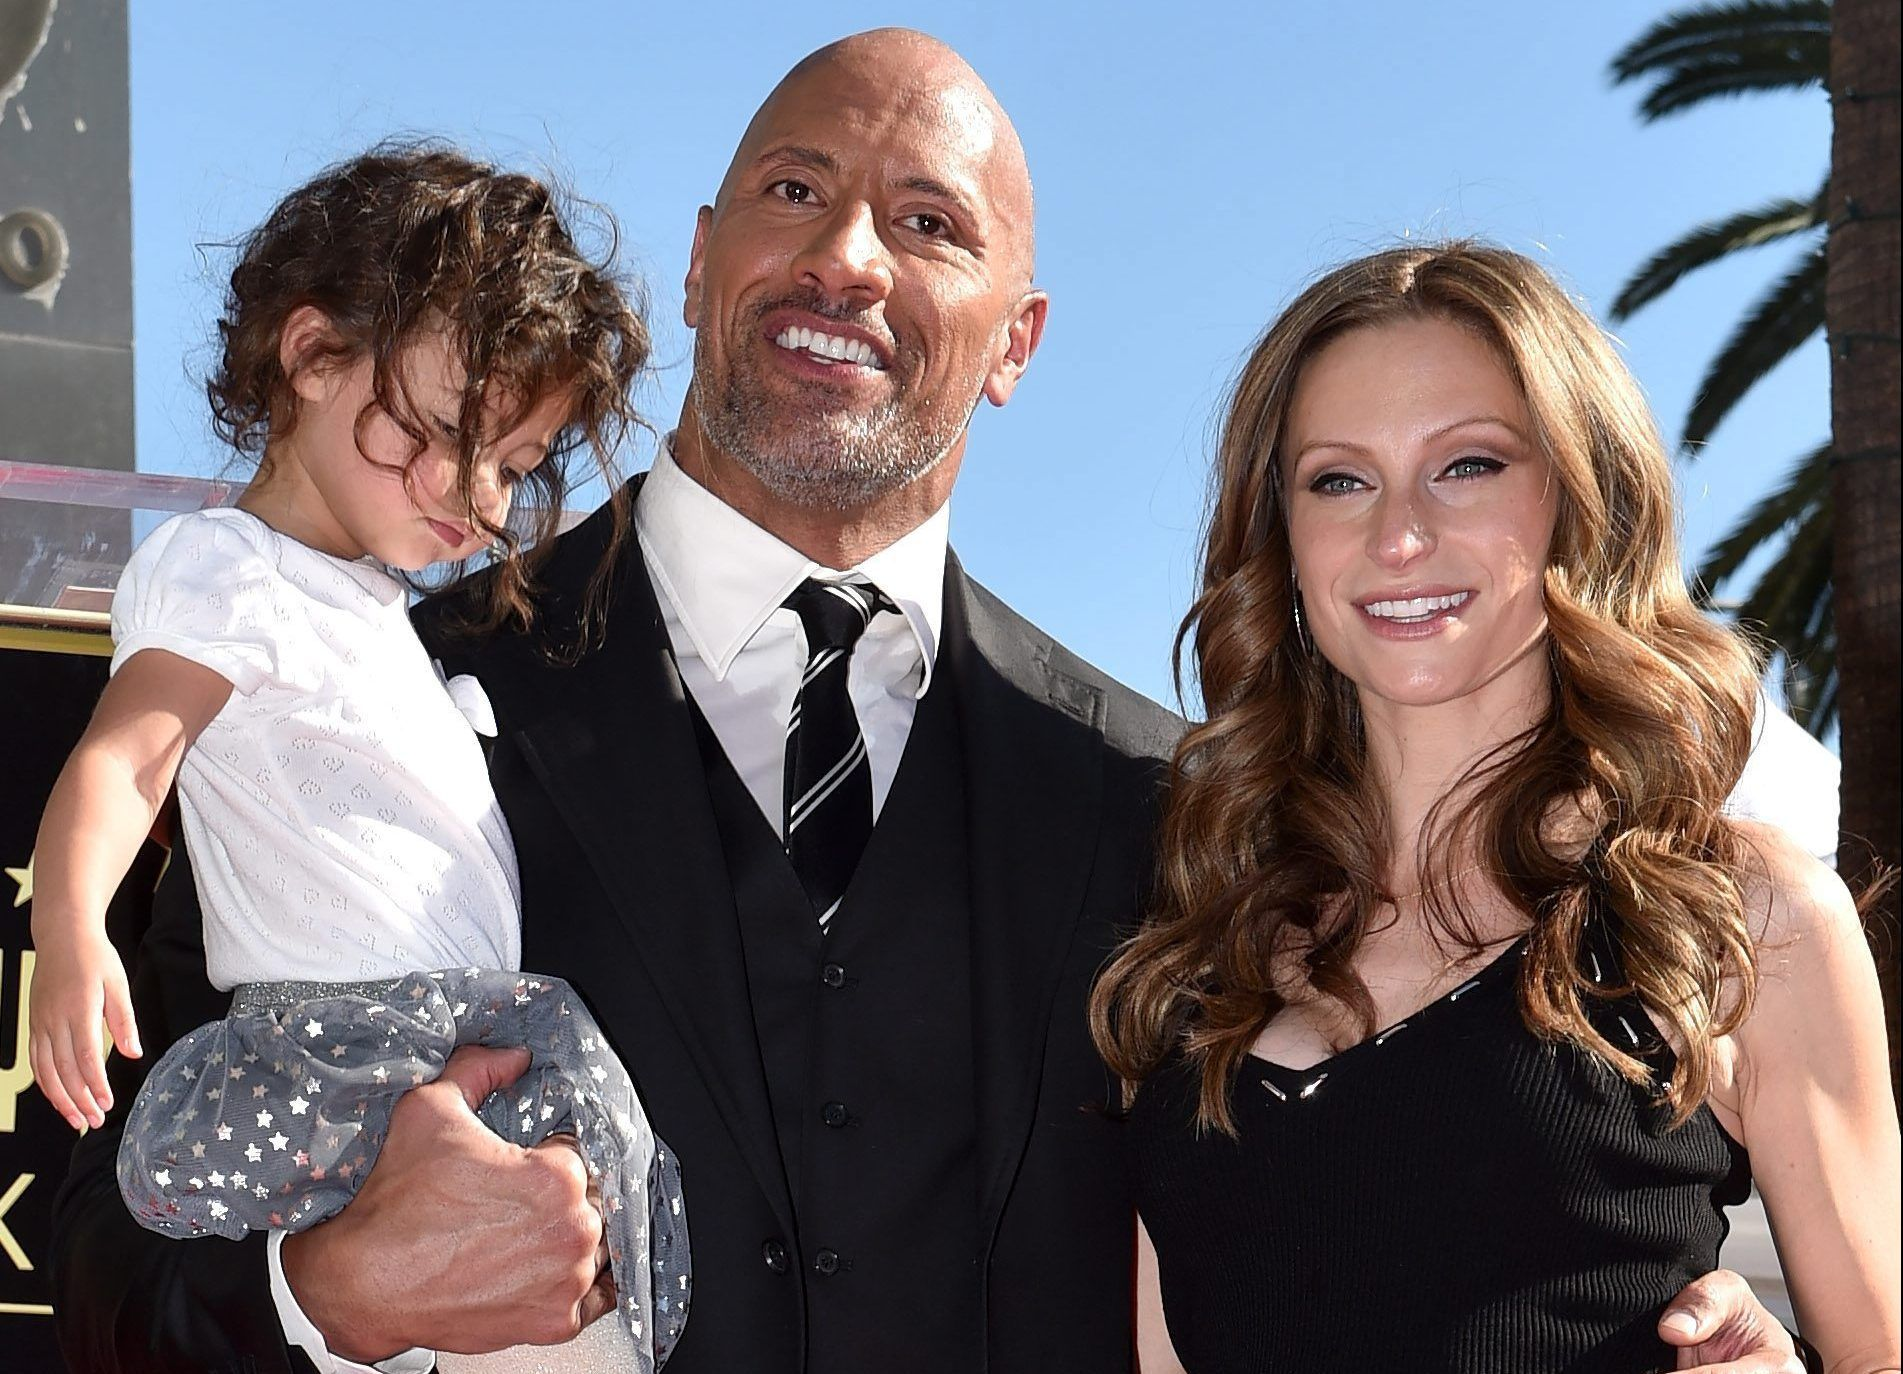 Dwayne Johnson and his family tested positive for COVID-19